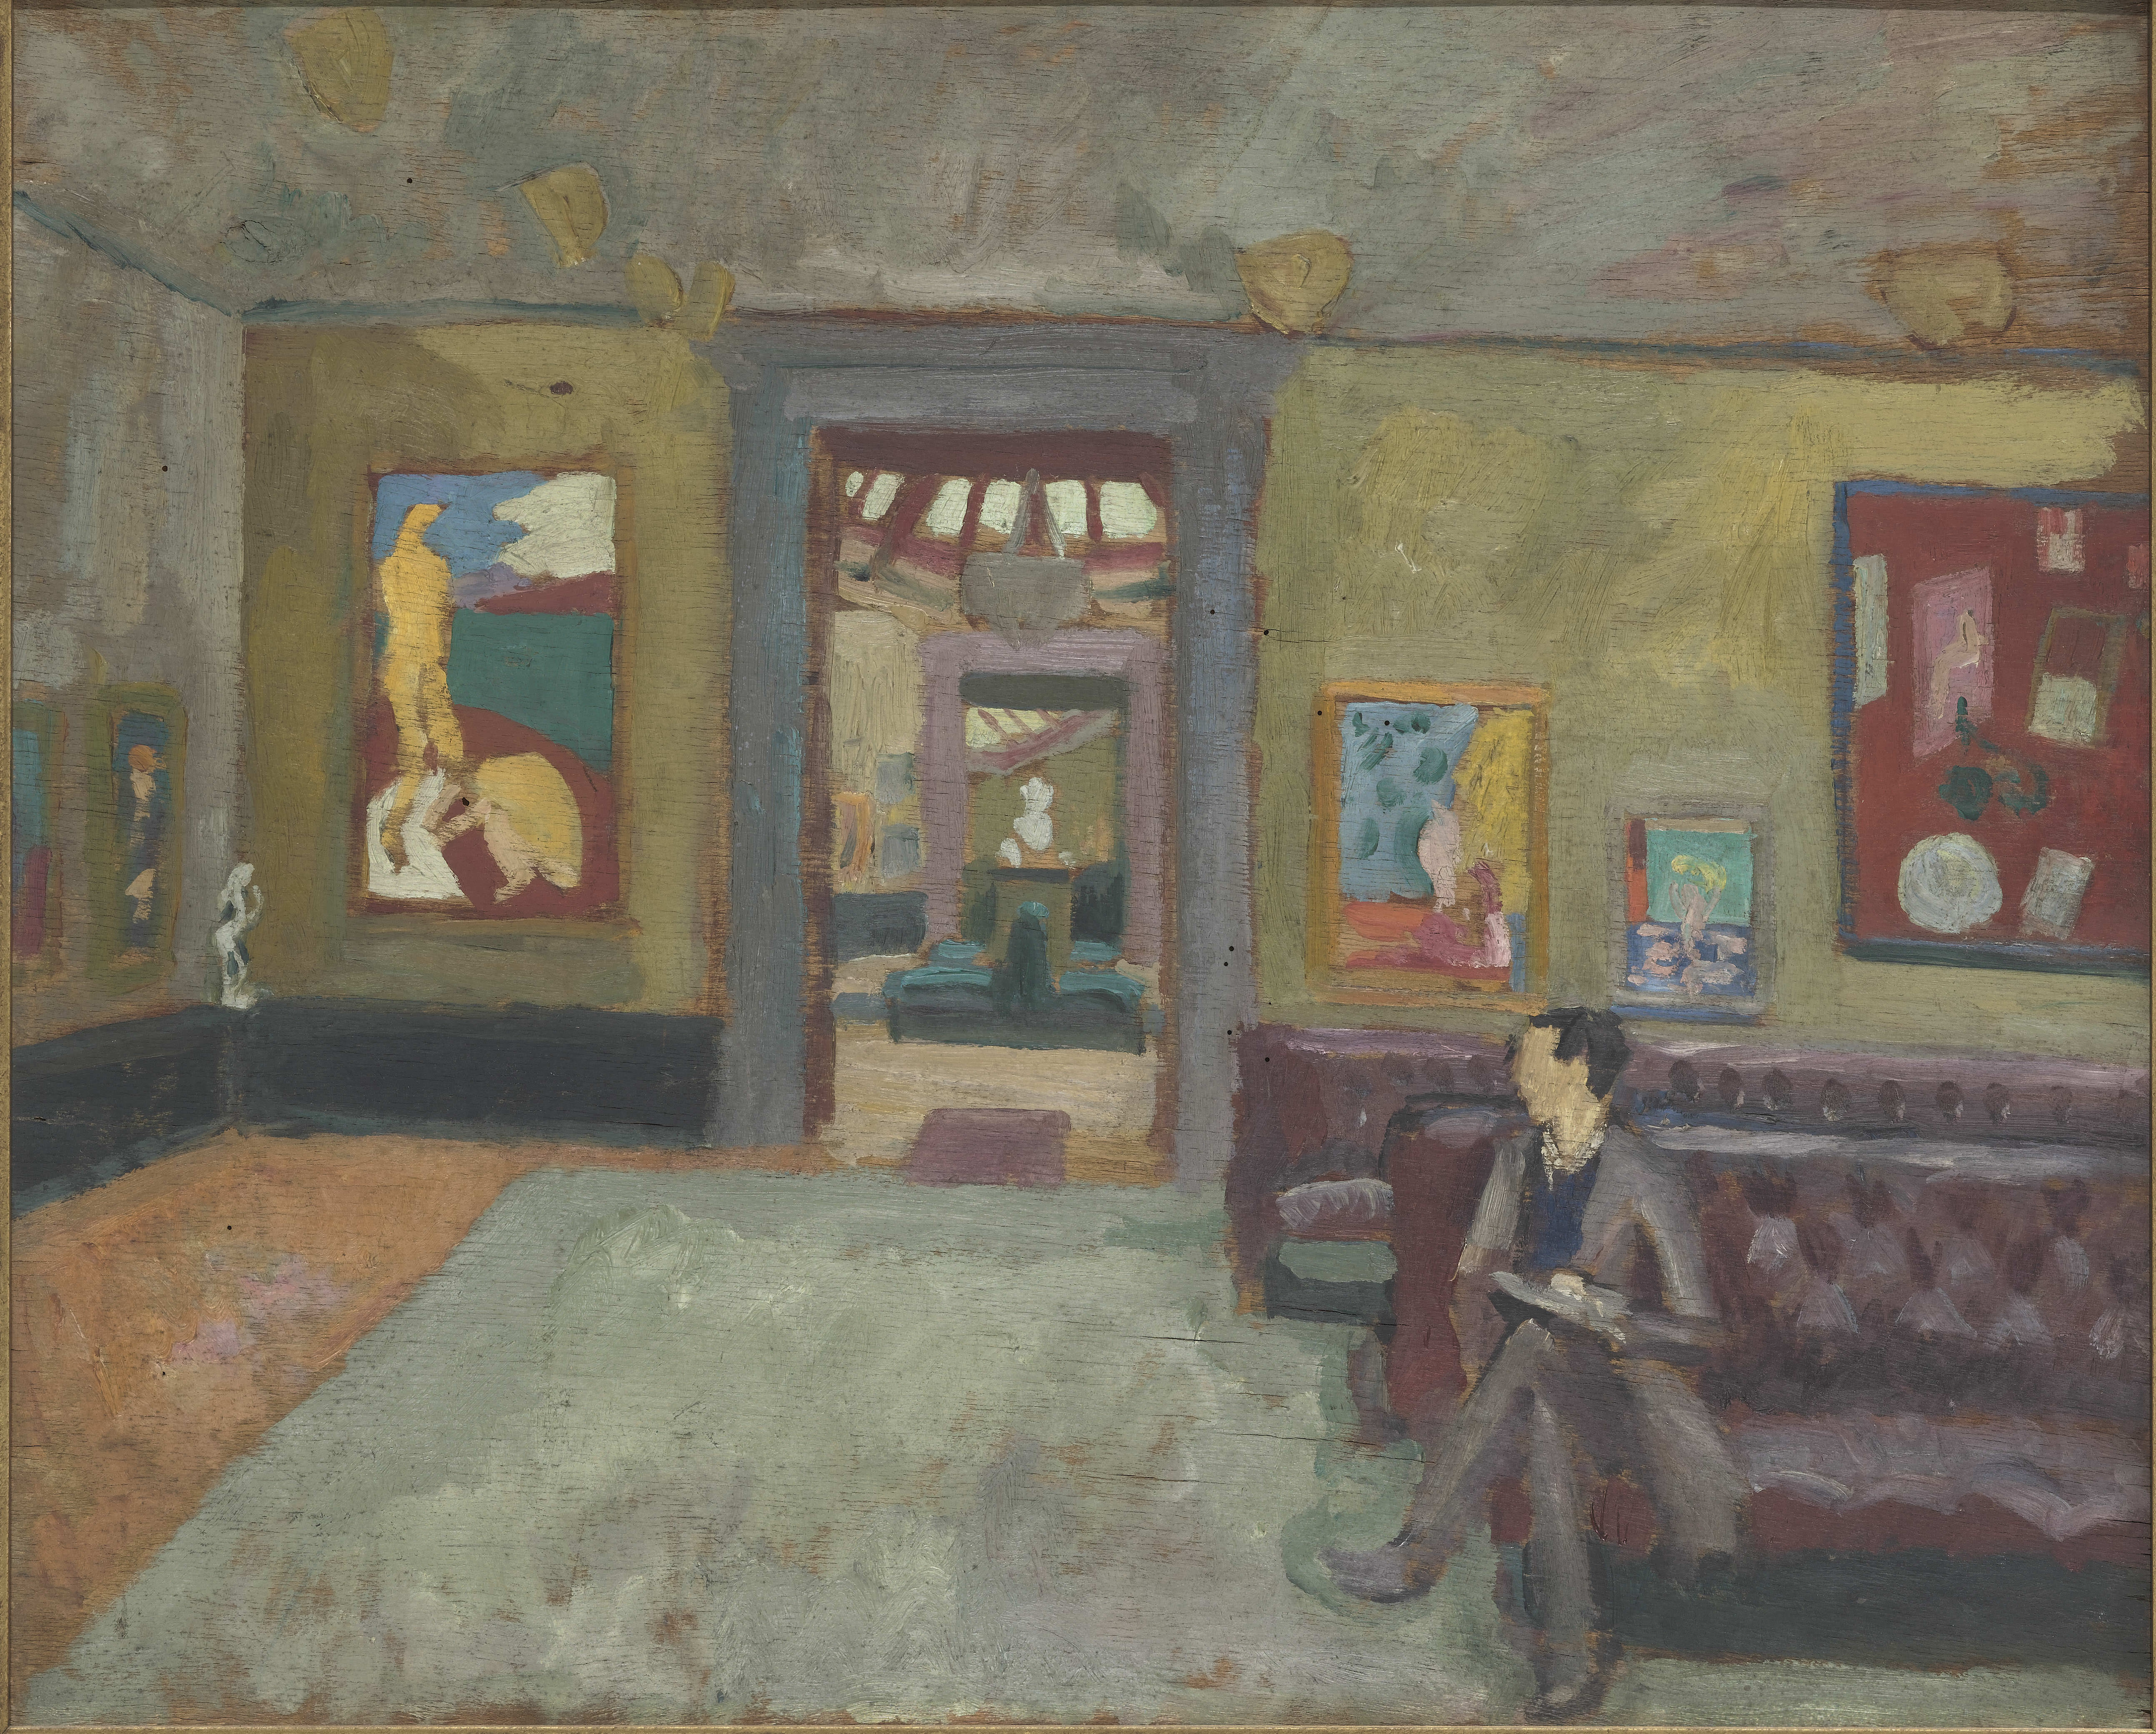 1912–1913, oil on panel, 50.5 x 60.5 cm. Collection Musée d'Orsay, Paris.